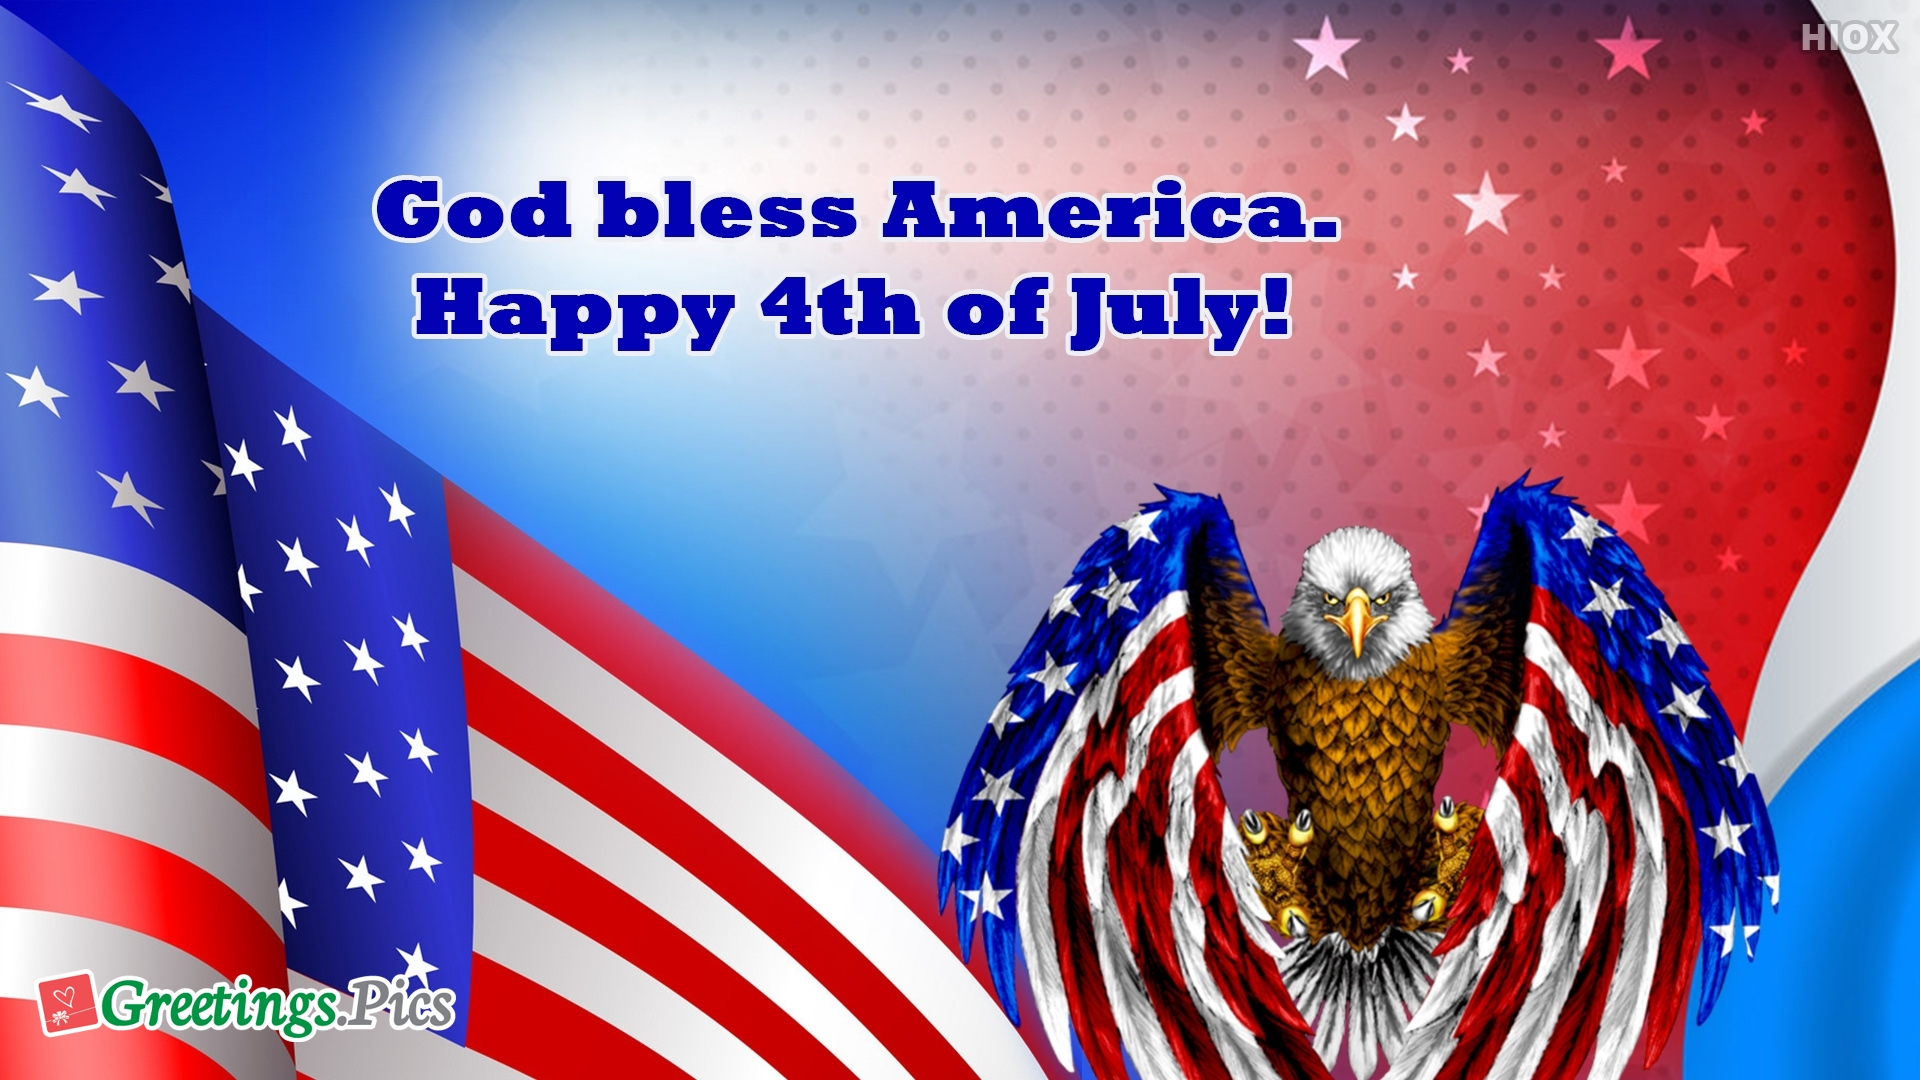 God Bless America. Happy 4th Of July!